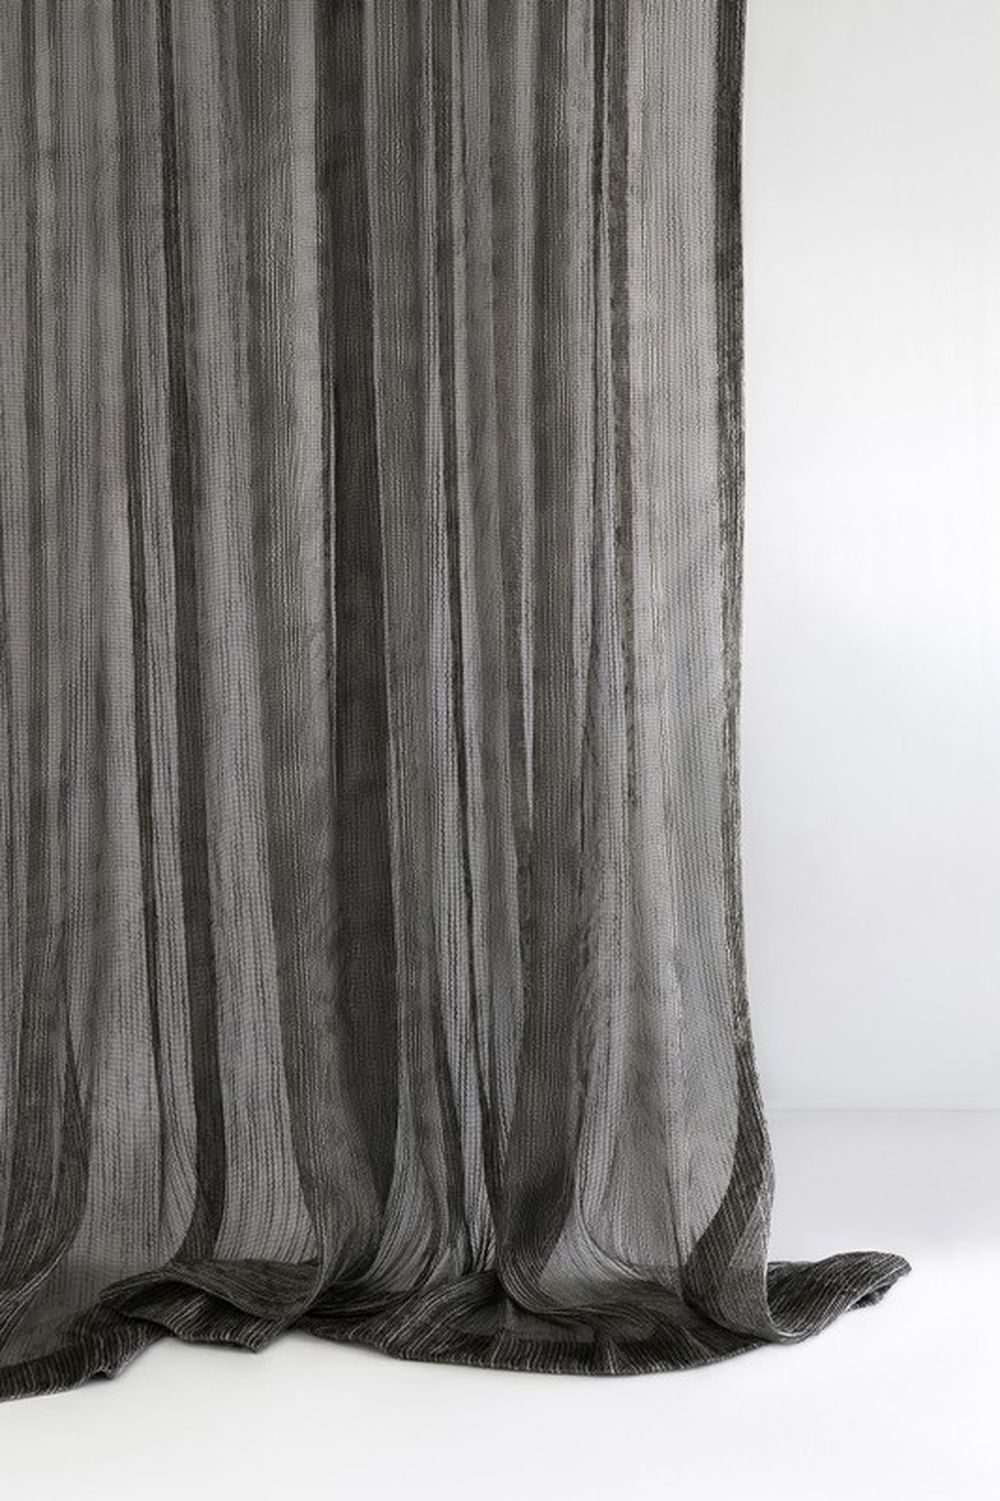 Photo of the fabric Hessian* Black Birch in situ by Mokum. Use for Drapery Sheer. Style of Abstract, Pattern, Sheer, Texture